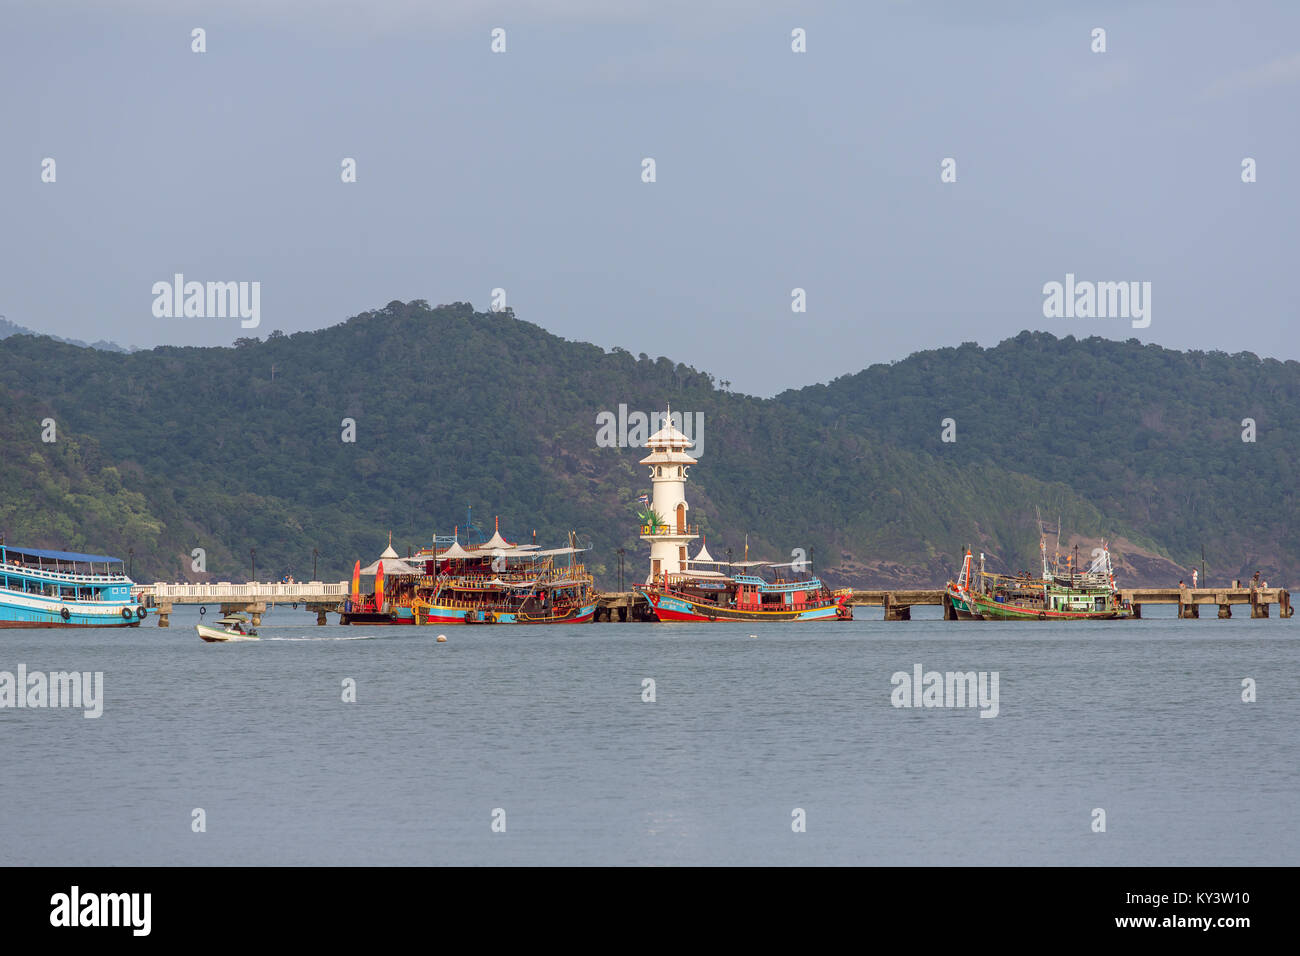 Lighthouse on a pier on Koh Chang Island in Thailand - Stock Image